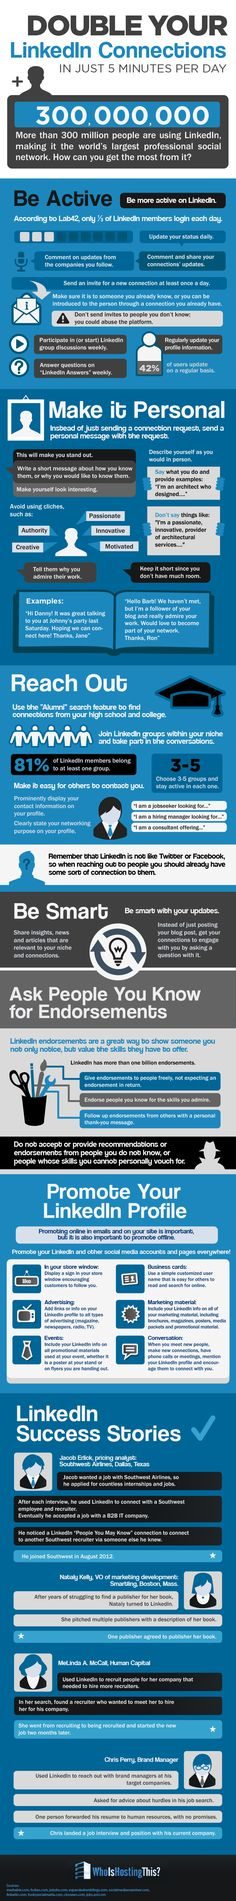 How to double your LinkedIn connections in just 5 minutes per day #linkedin #infographic